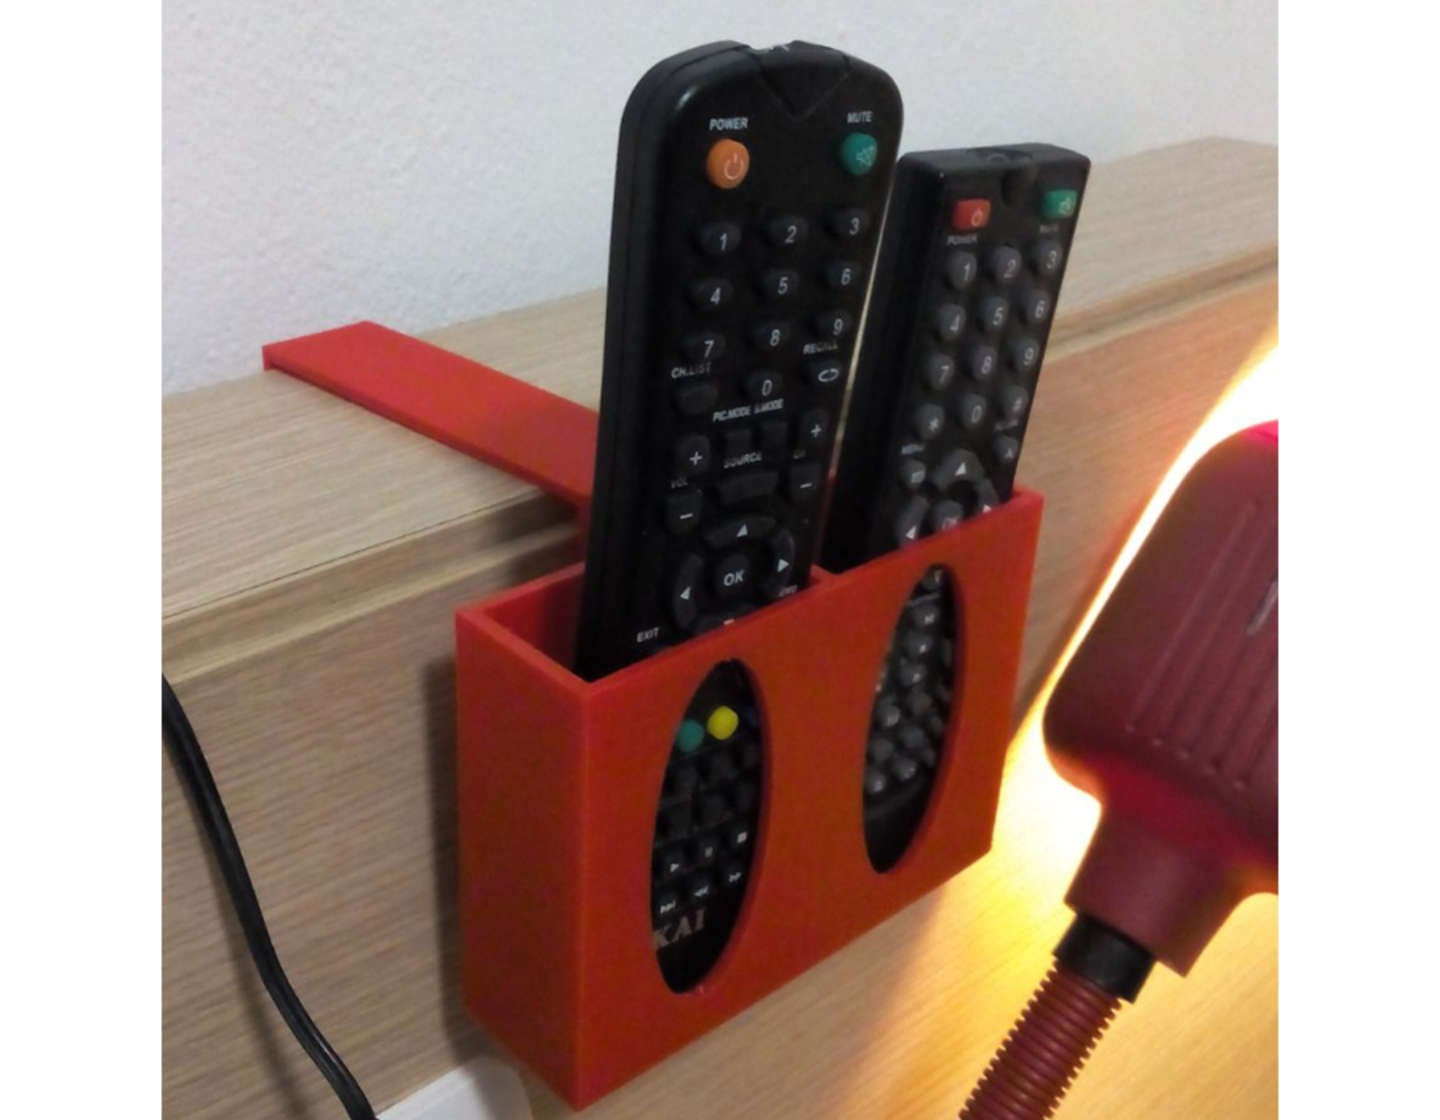 3D printed bedside TV remote holder